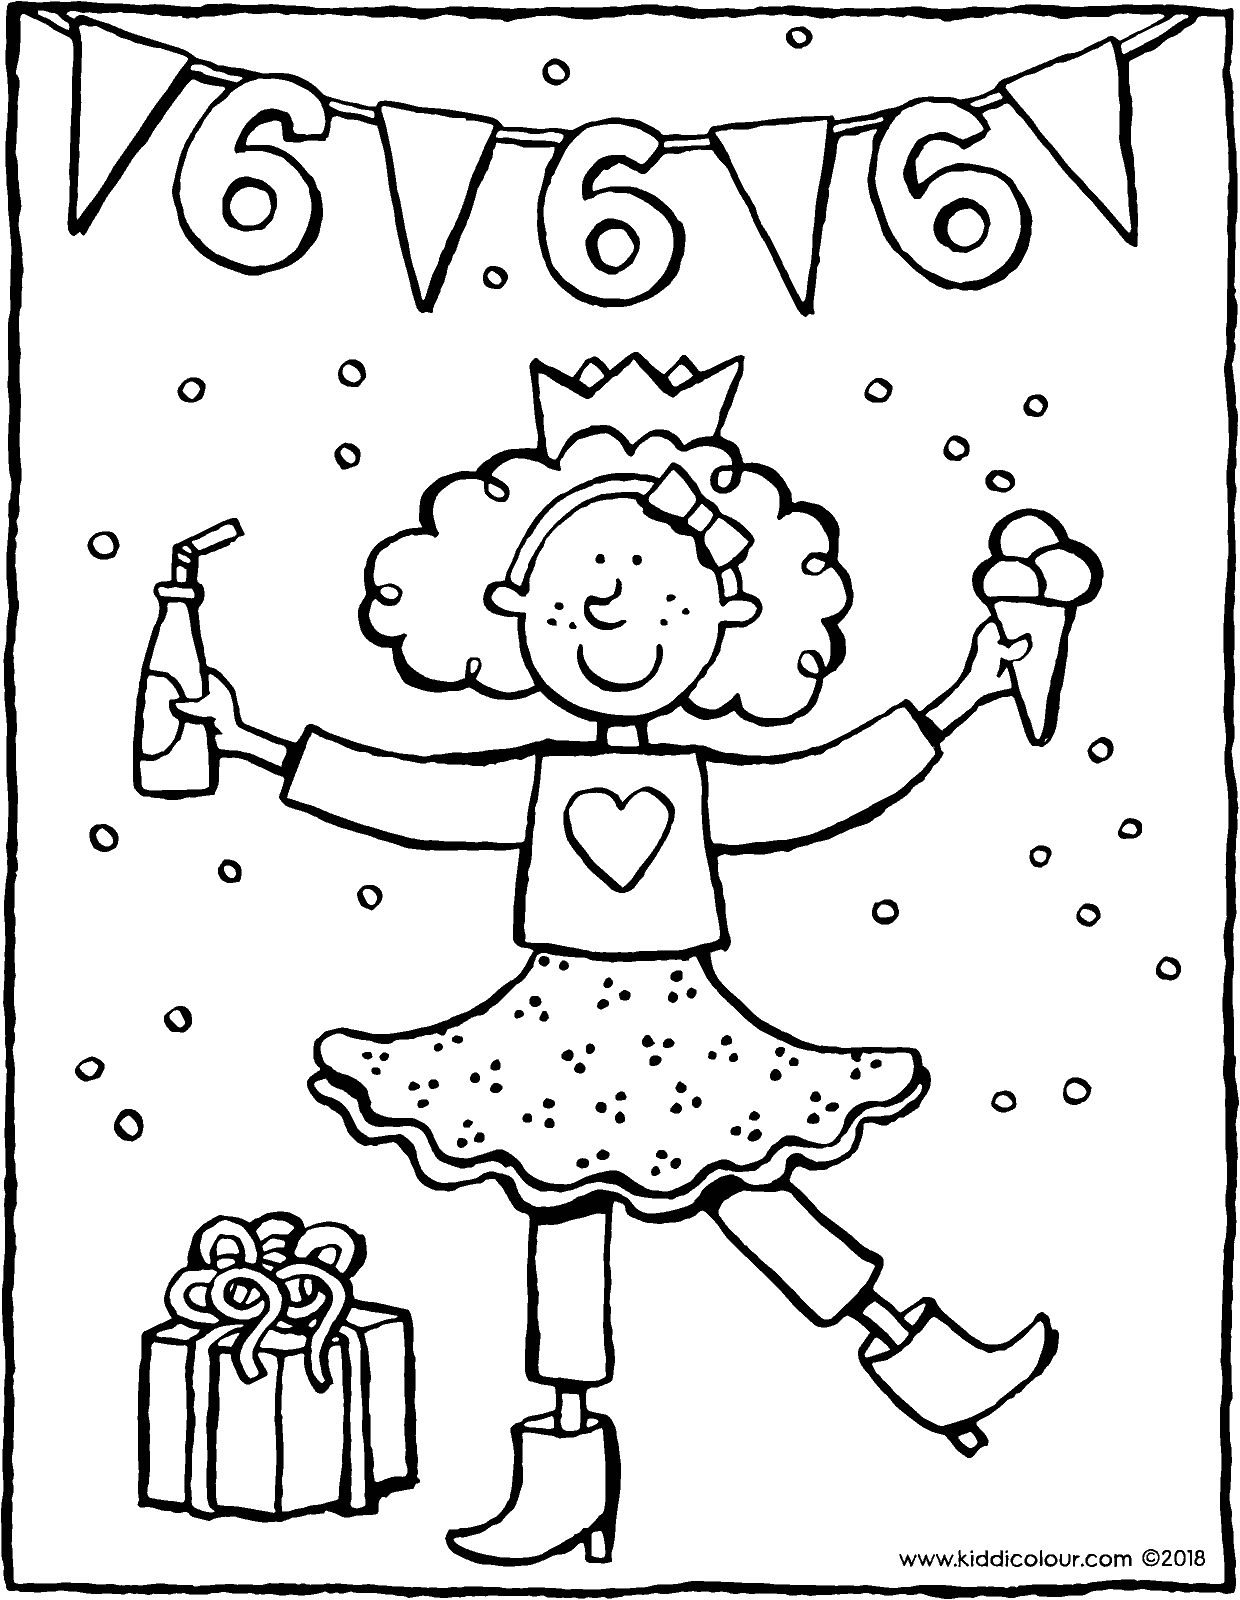 coloring sheets for 6 year olds coloring pages for 6 year olds free download on clipartmag 6 for sheets olds coloring year